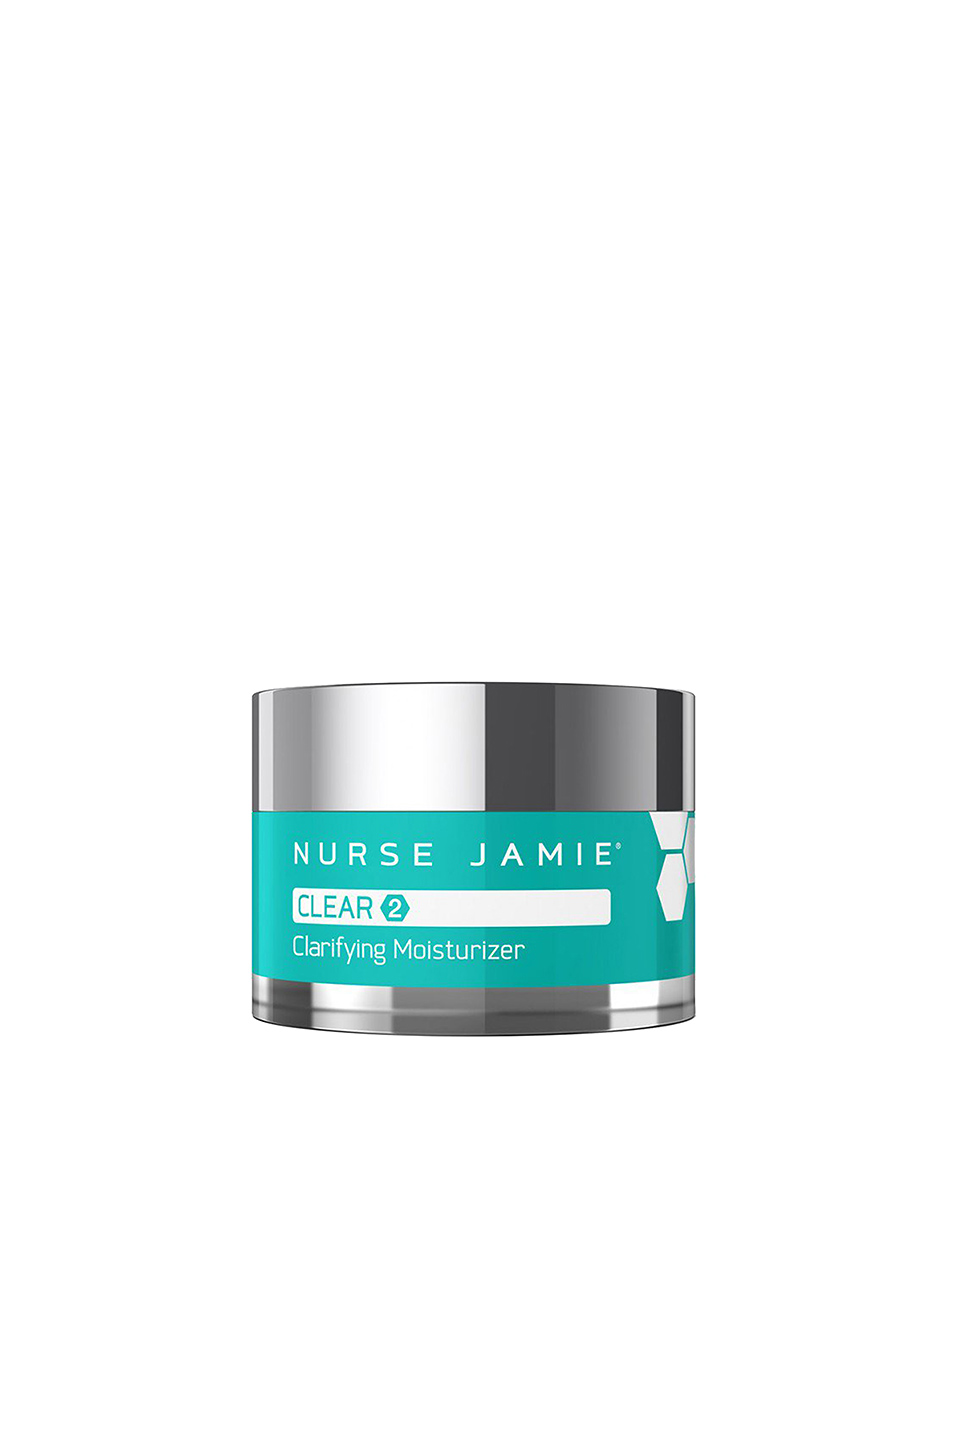 Nurse Jamie Clear 2 Clarifying Moisturizer in